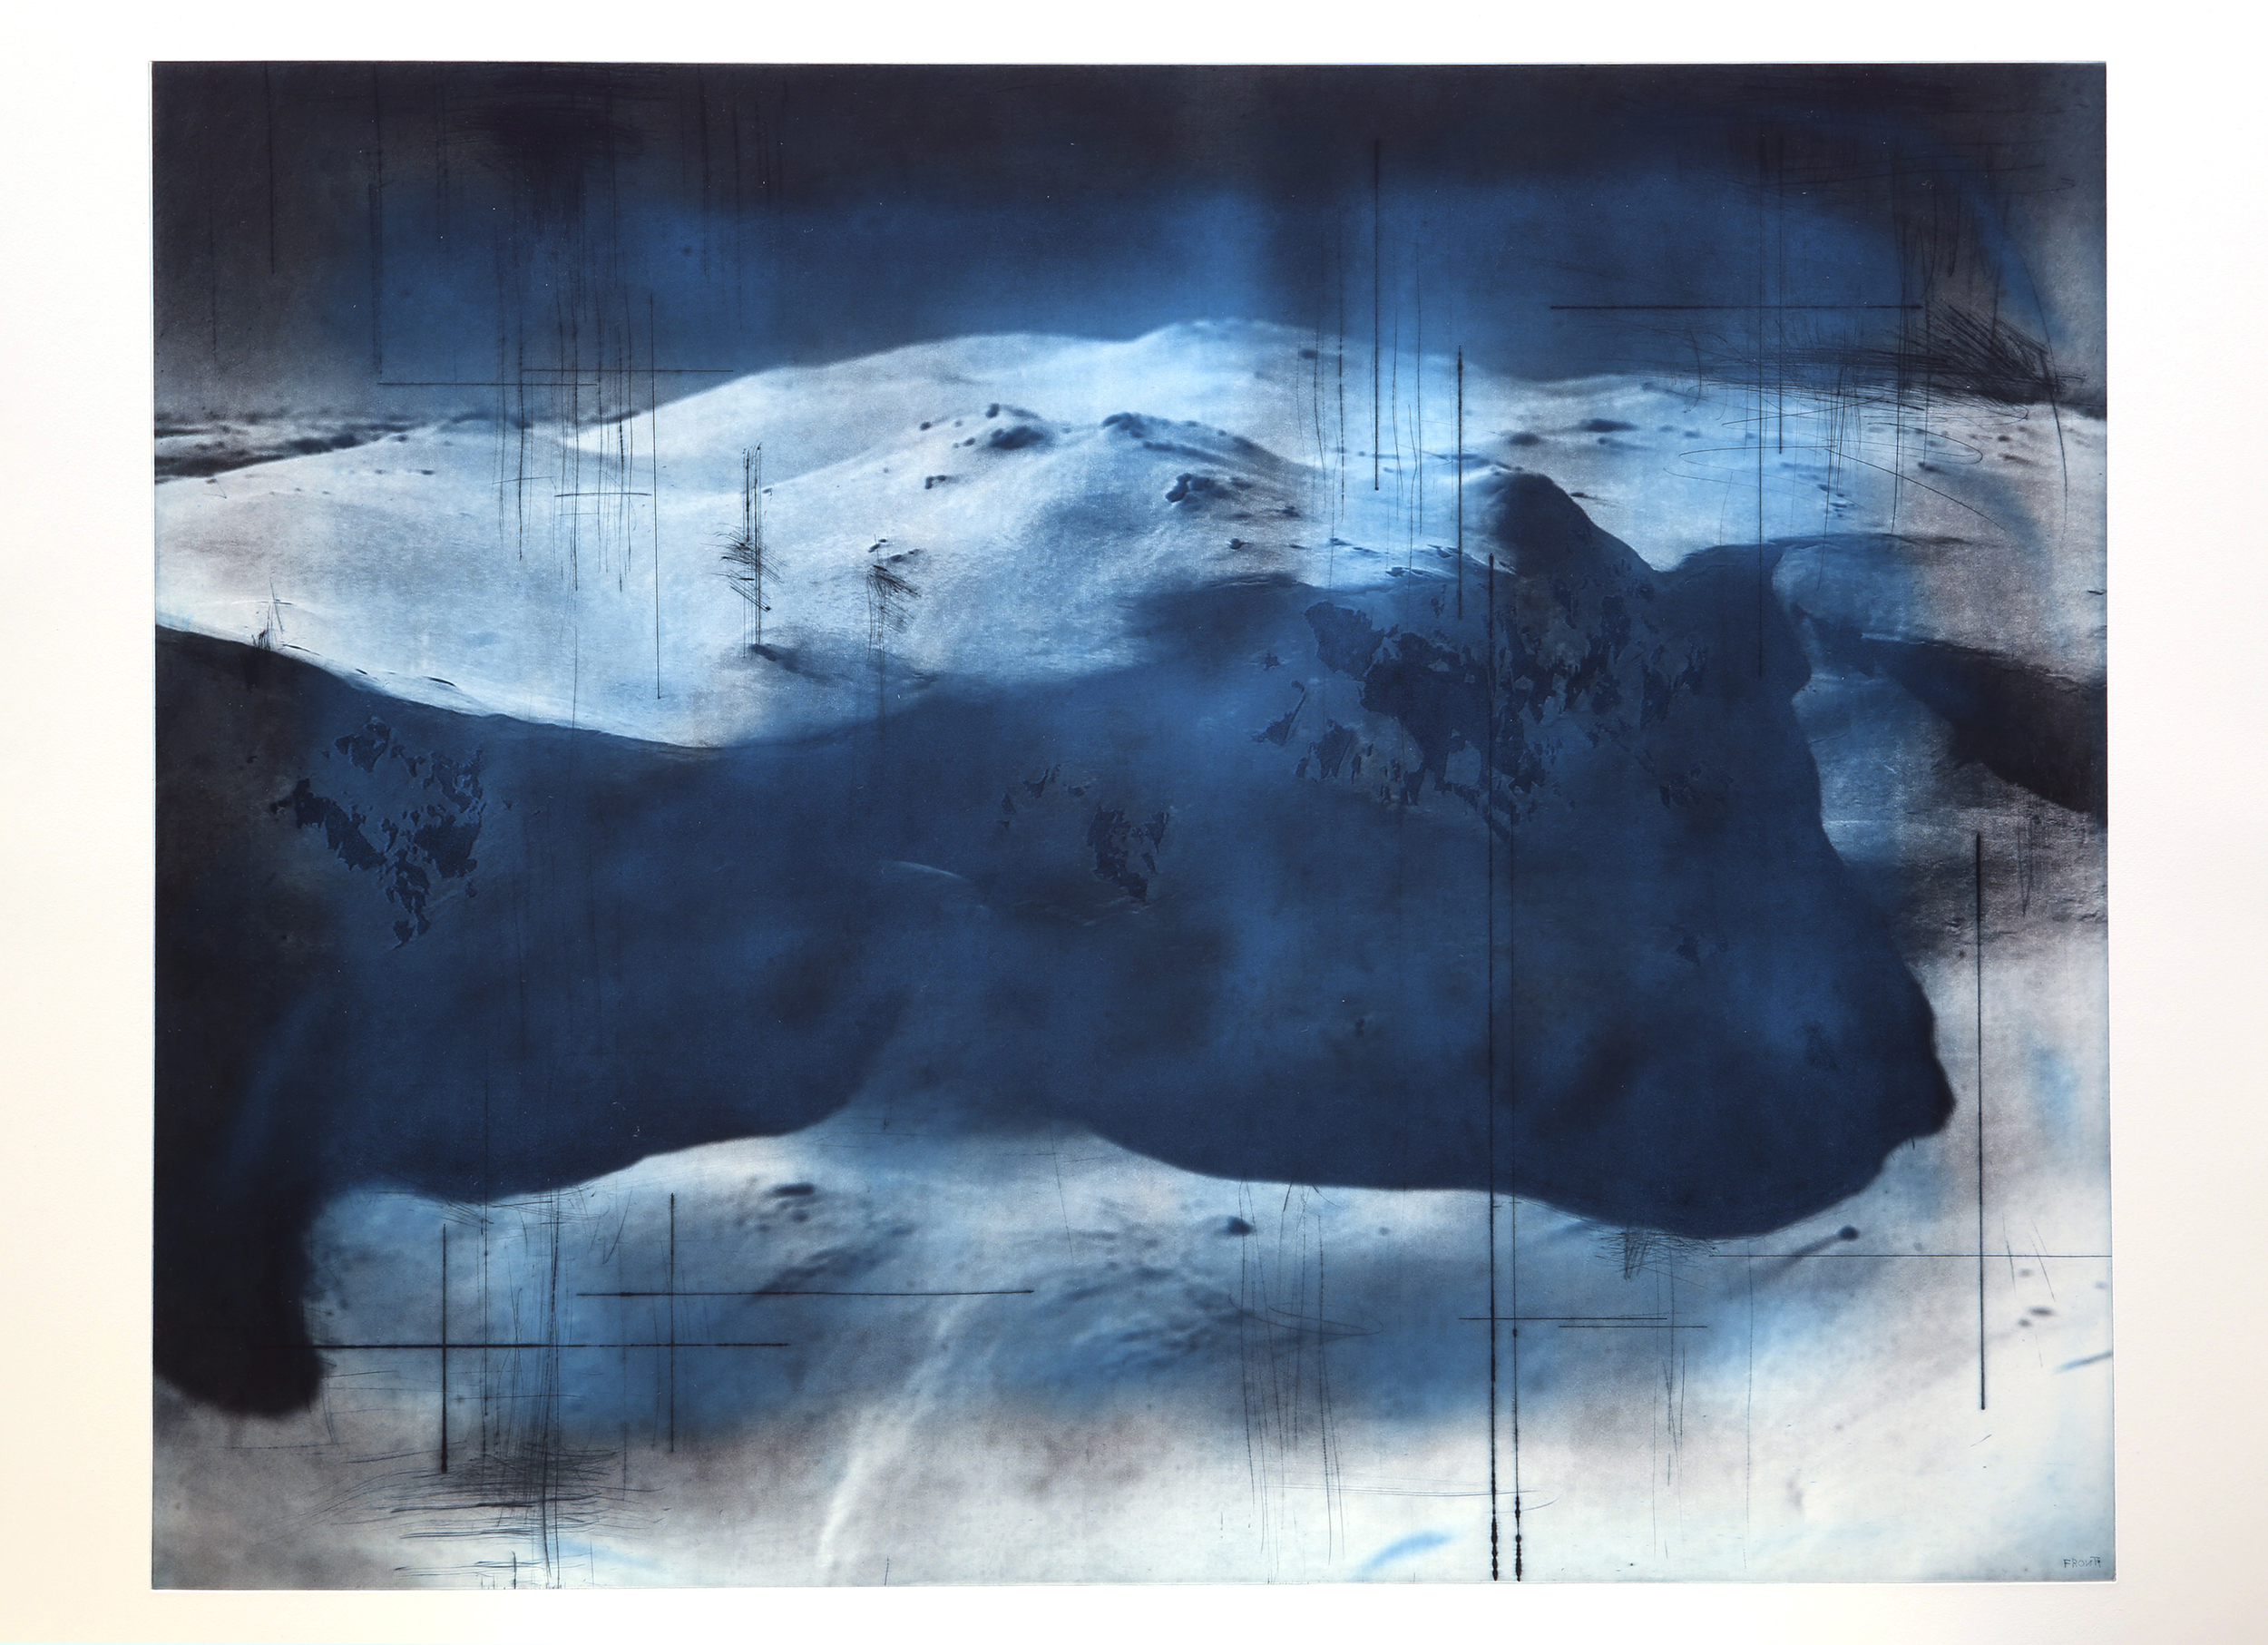 Reservoir / Helicopter ( Setesdal ) Blue   Polymer / Etching / Drypoint 108 x 78 cm / 30,7 x 42,5  in Edition of 40 + 7 Ap Editeur: Per Fronth / Atelje Ole Larsen / Helsingborg  33/2015: